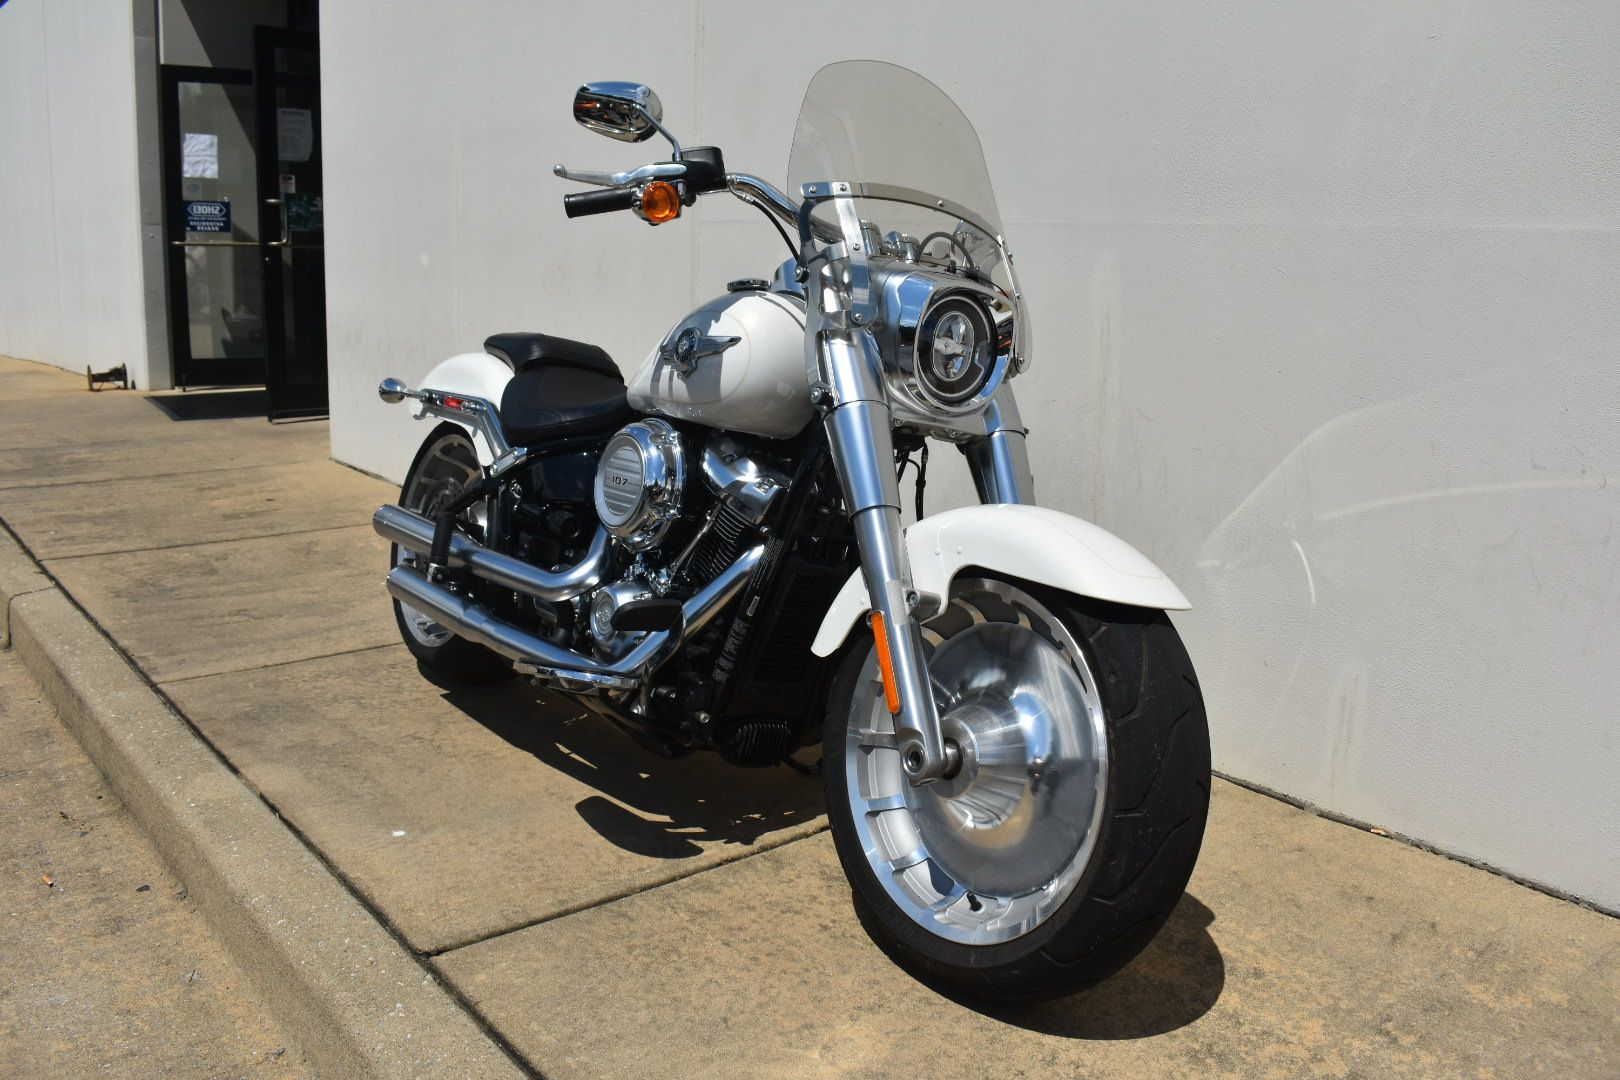 Pre-Owned 2018 Harley-Davidson Fat Boy FLFB